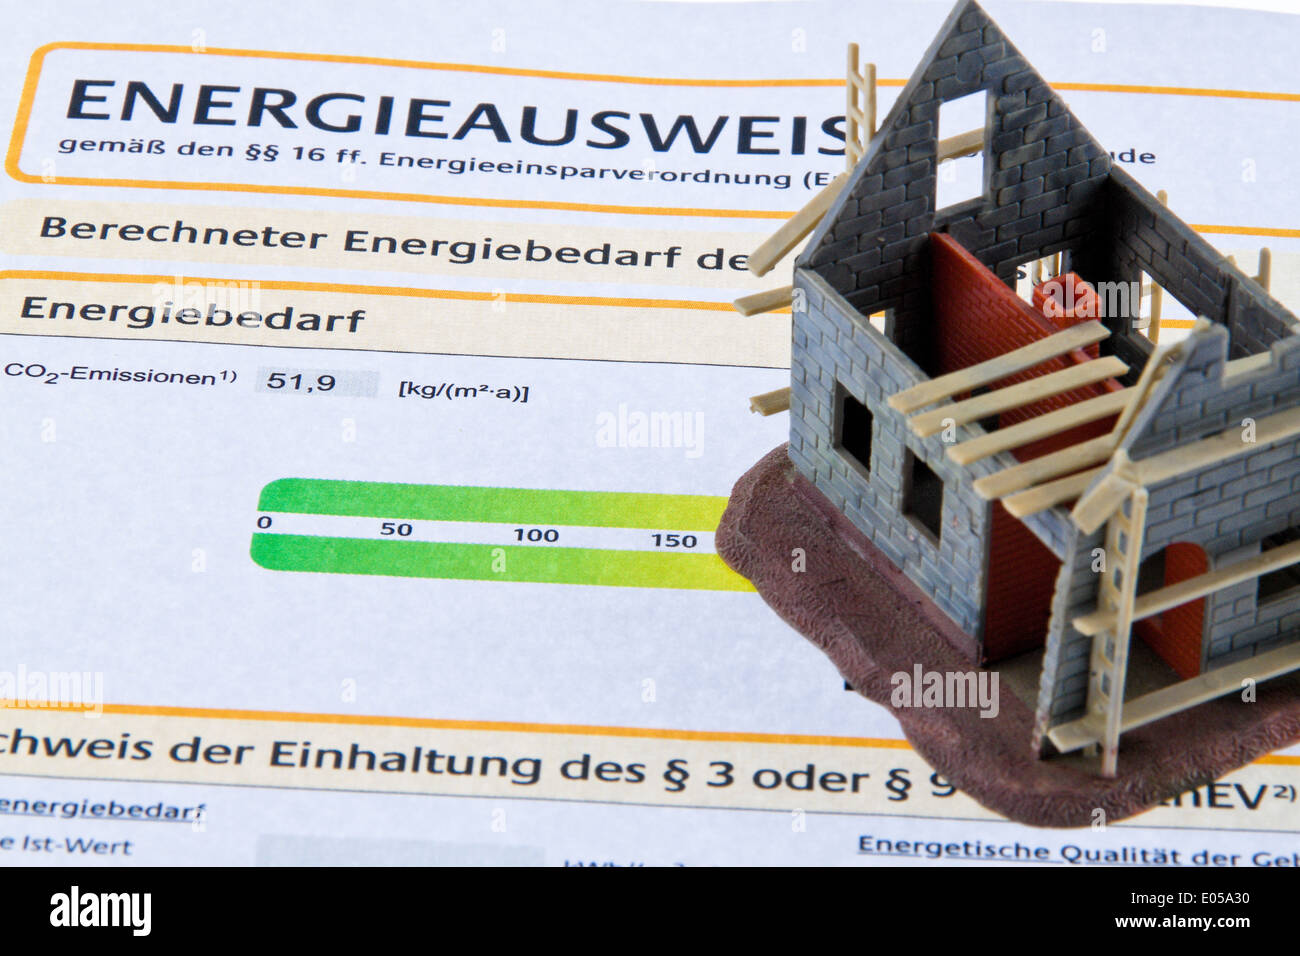 Shell House With Energiepass Energy Identity Card For Germany Stock Photo Alamy